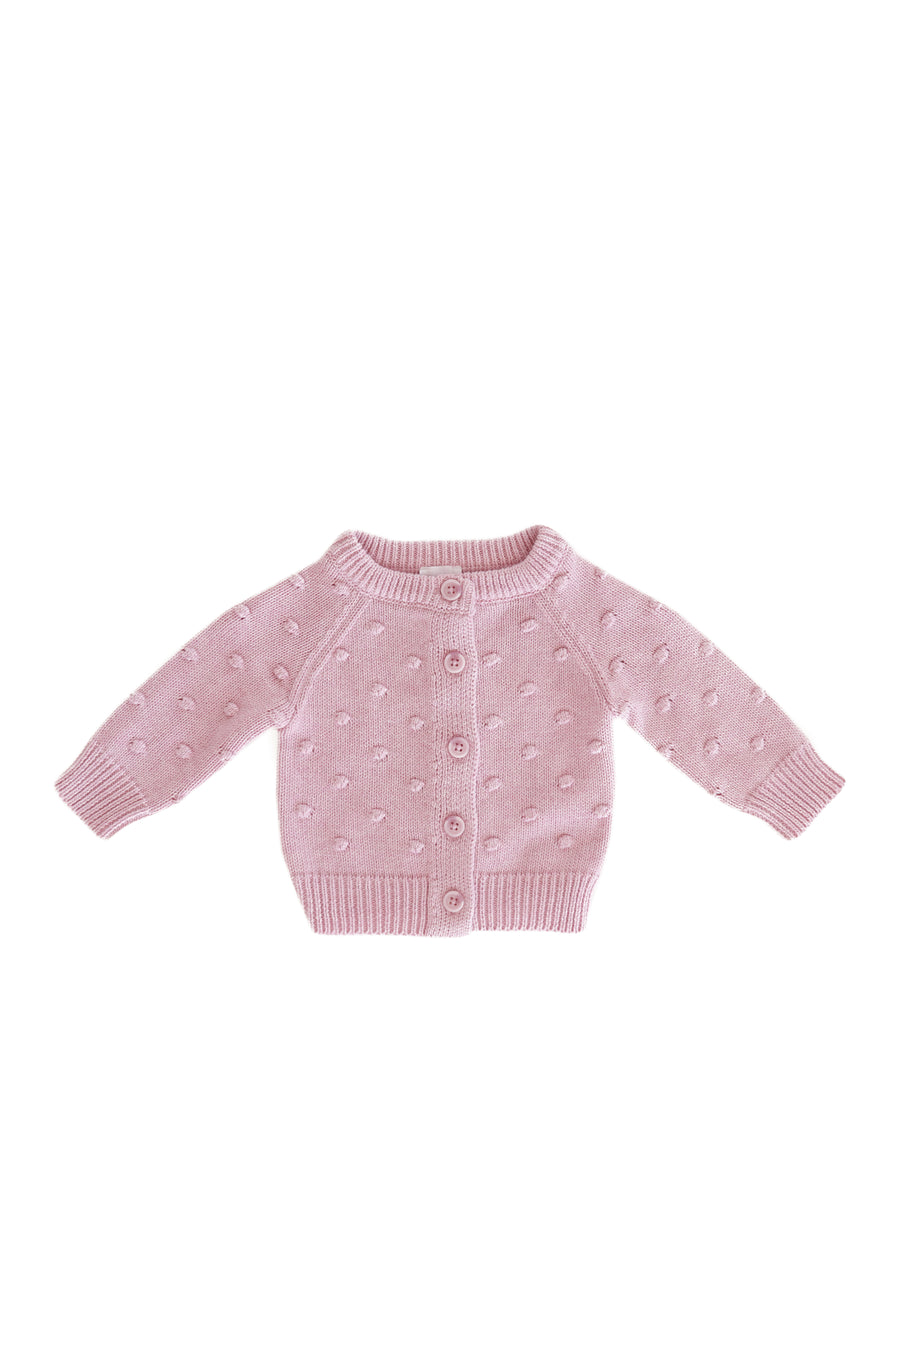 Dotty Cardigan | Rose Marle